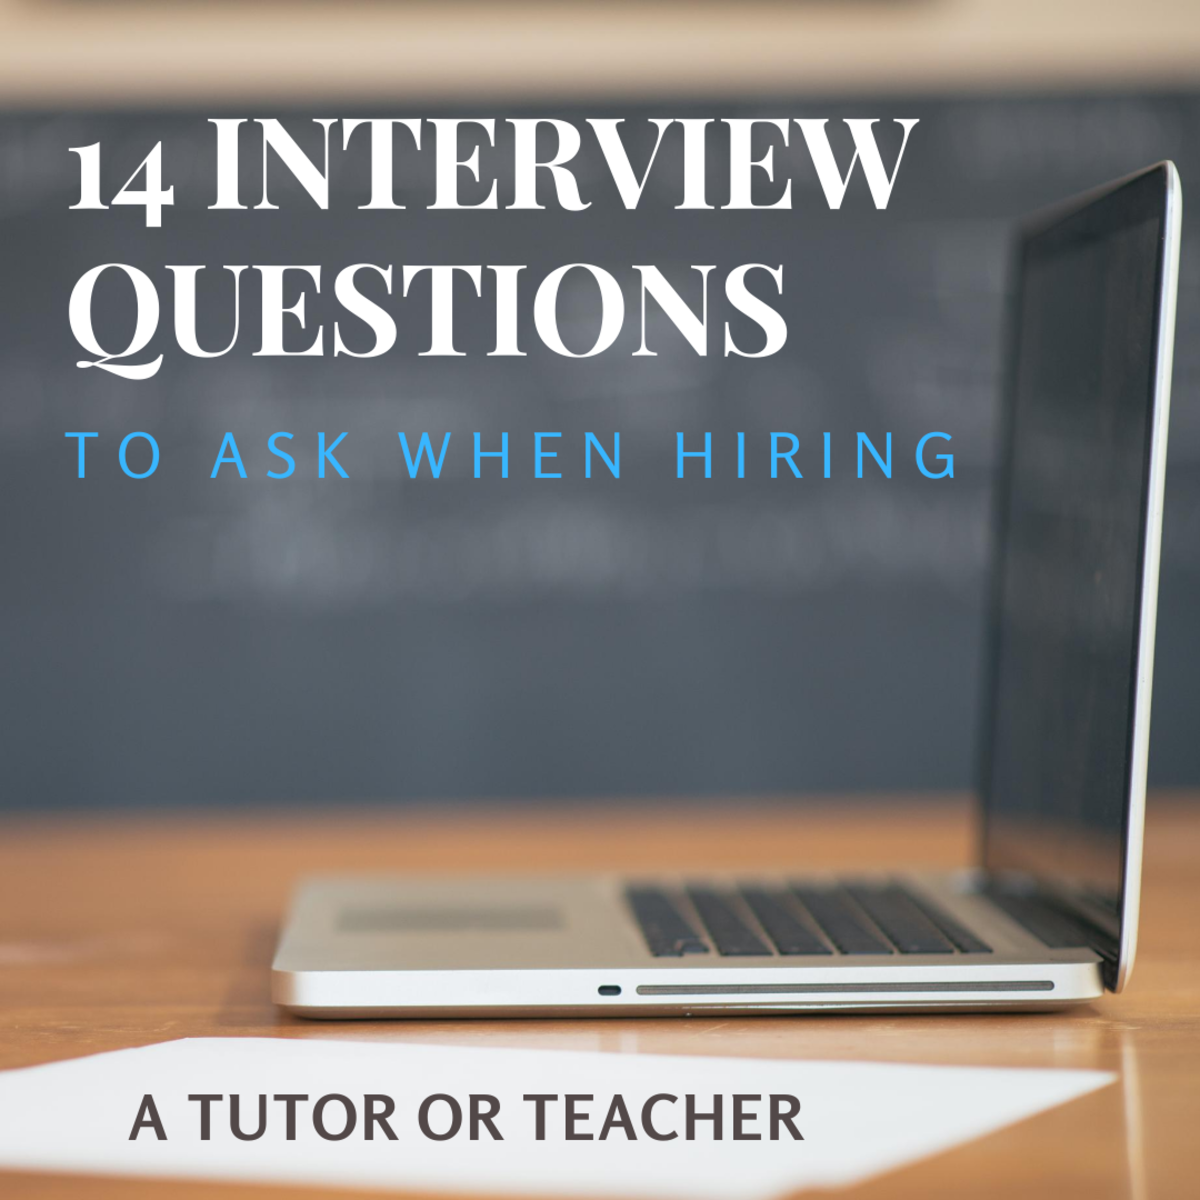 14 Interview Questions to Ask a Tutor or Teacher